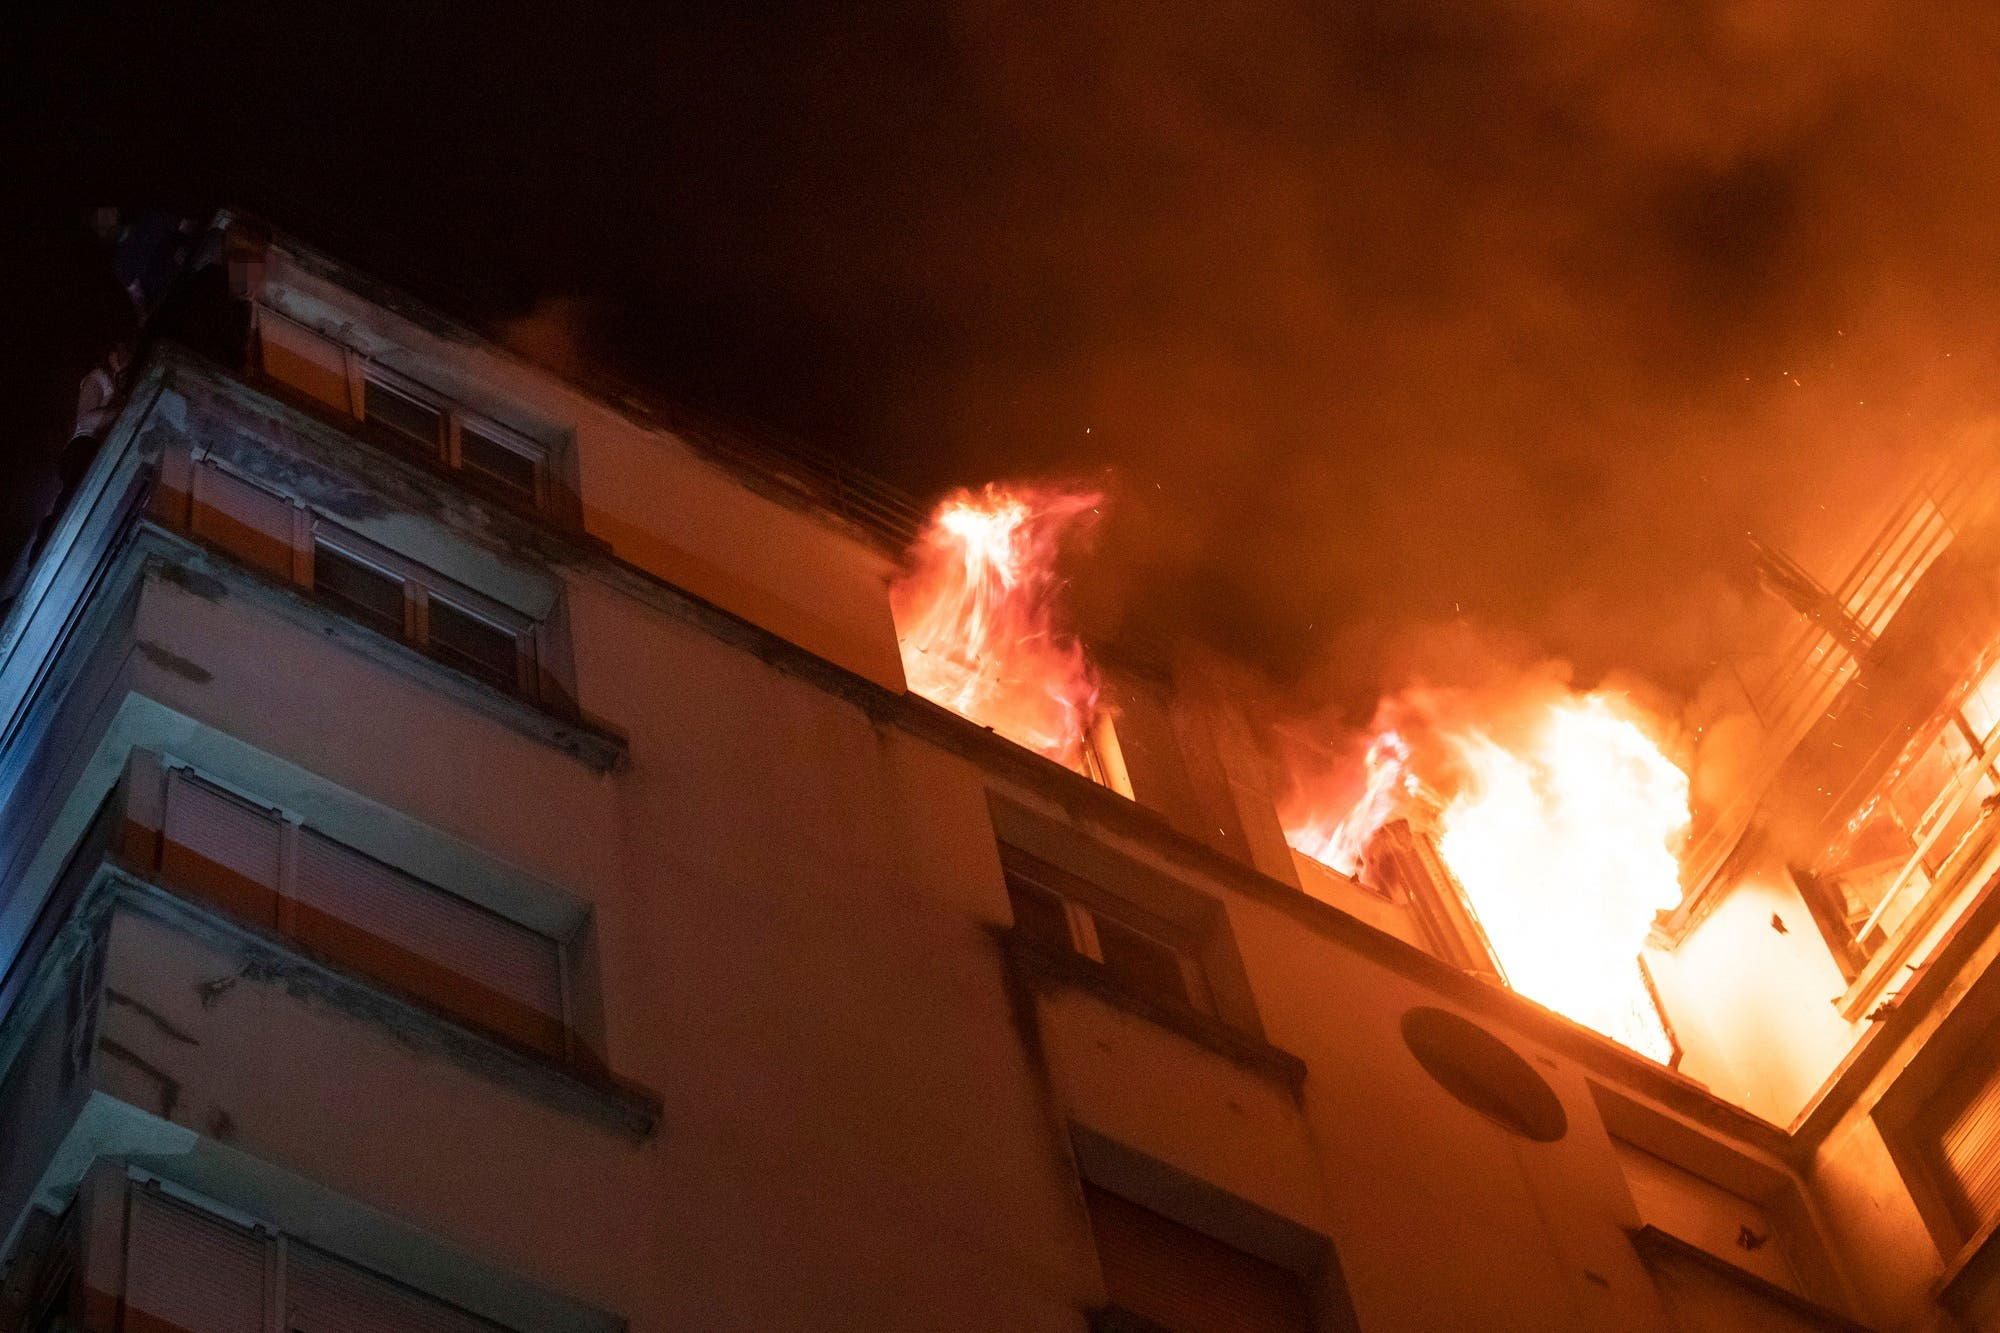 The Paris prosecutor says a woman has been detained in the initial investigation into the fire. (AP)